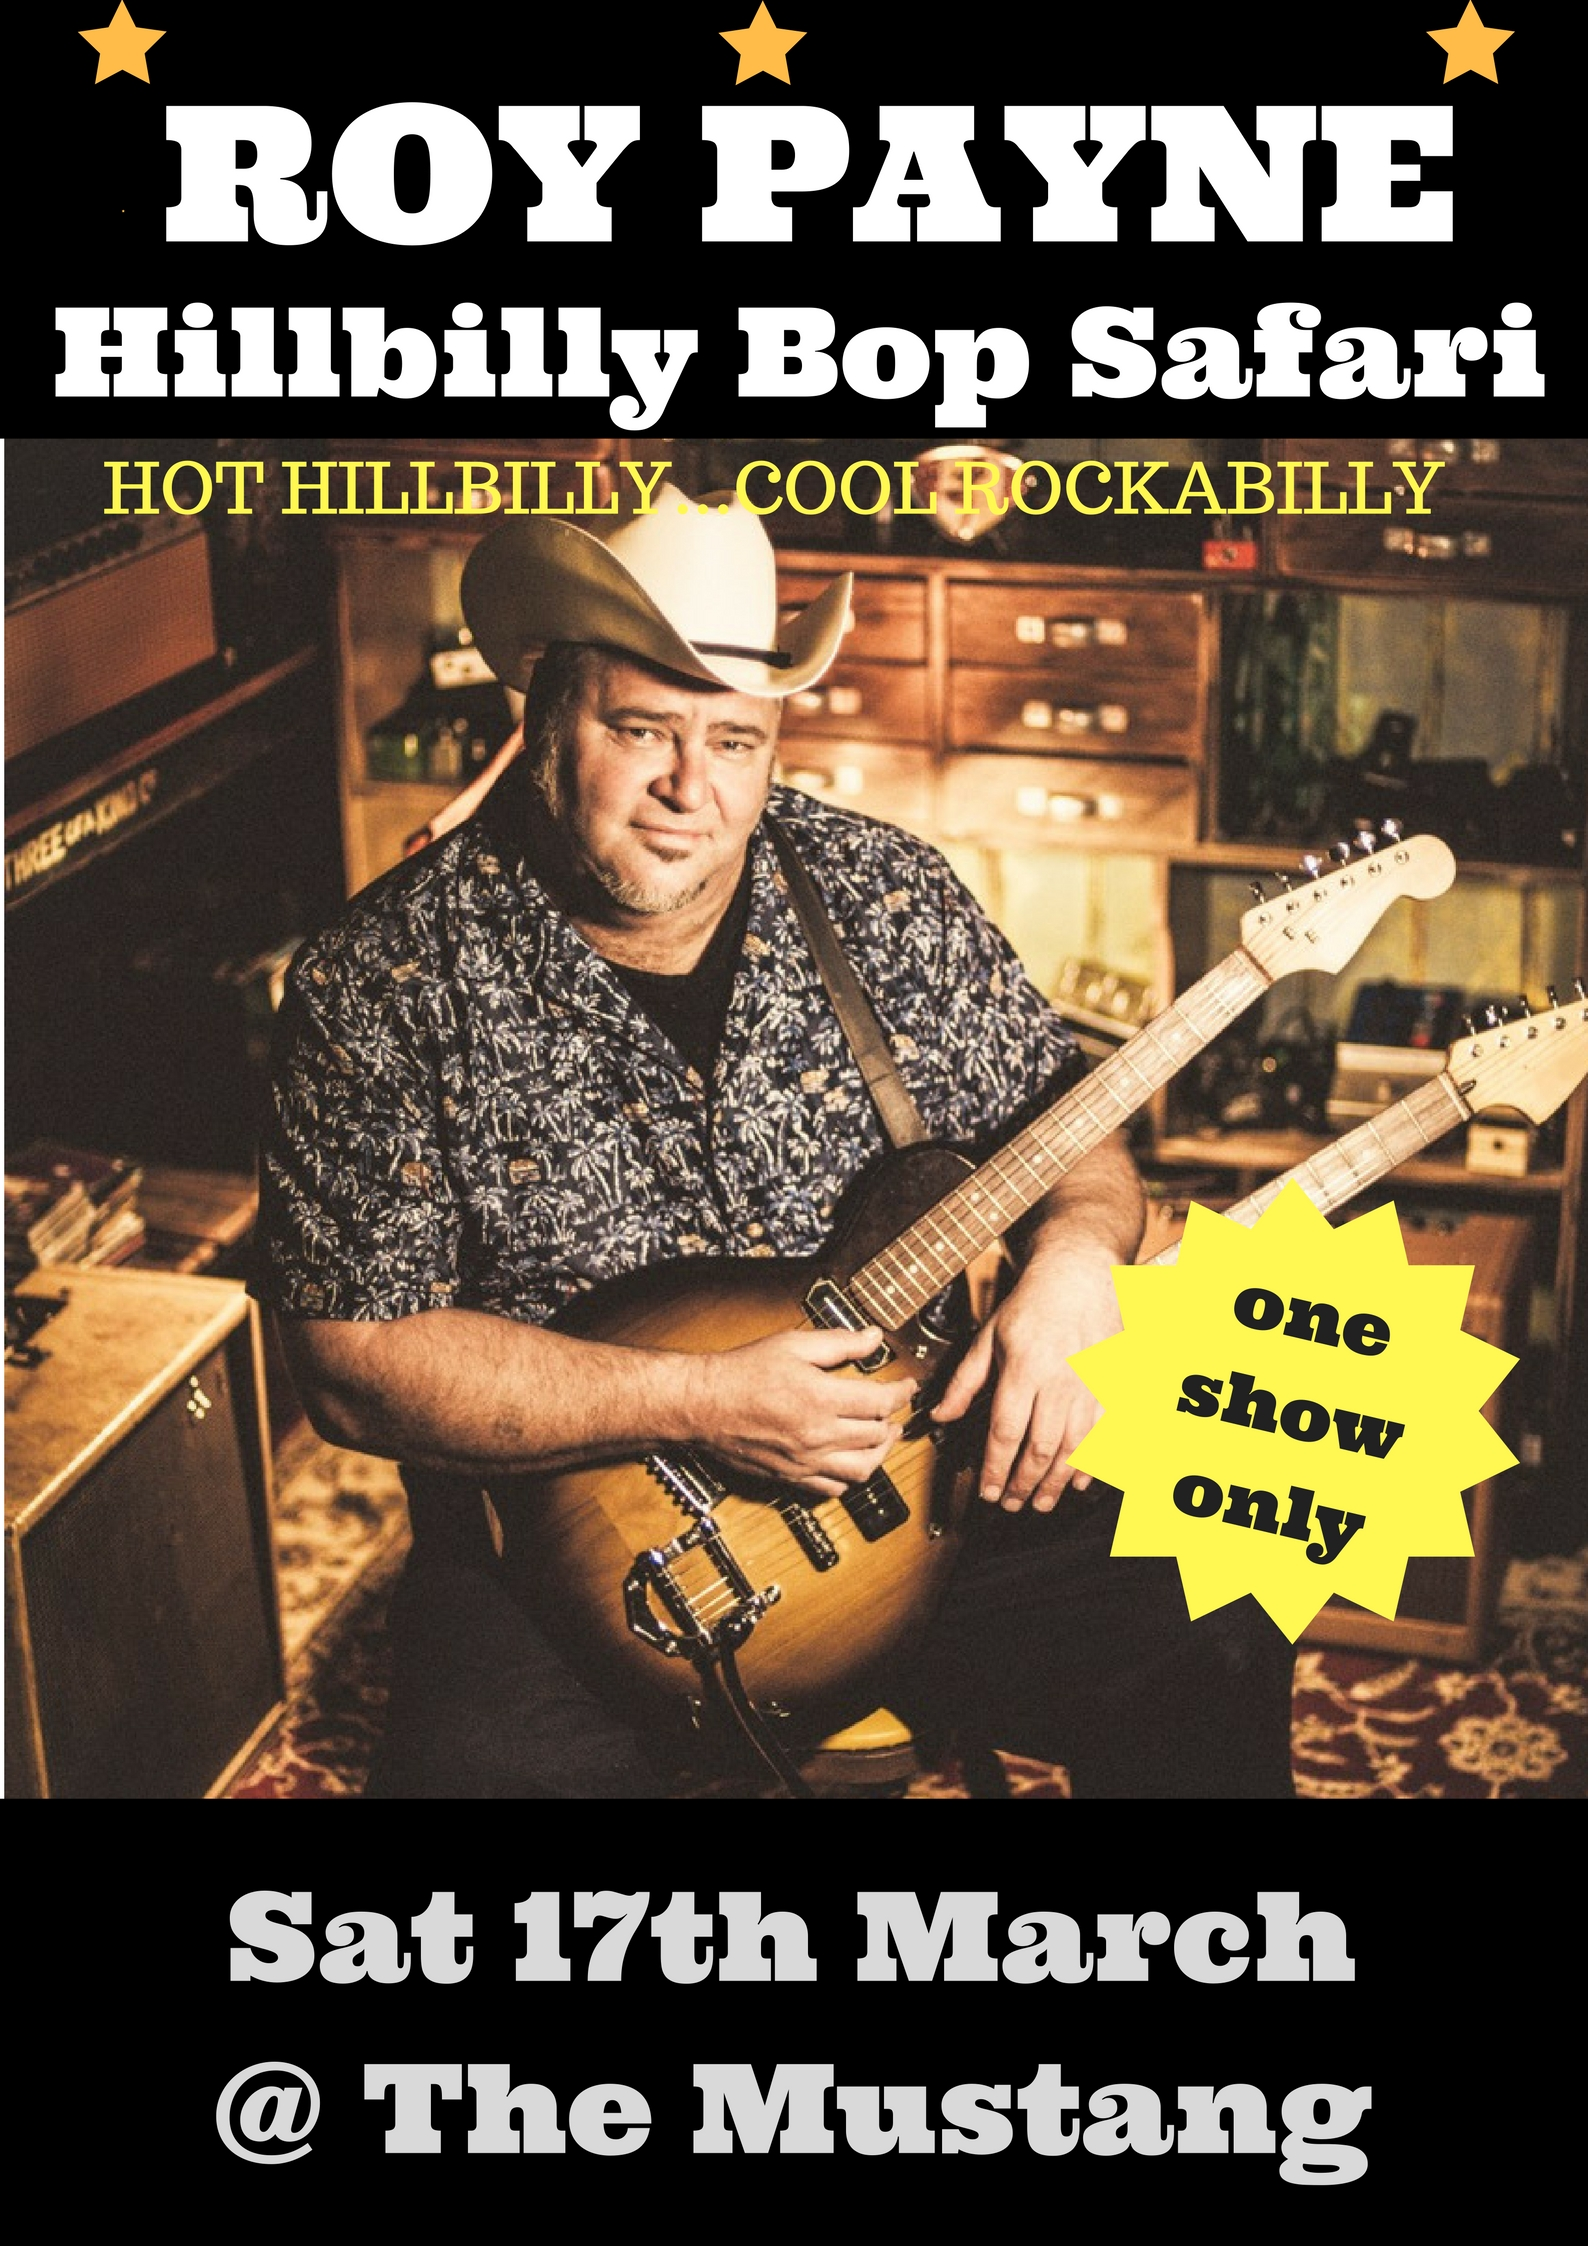 Roy Payne's Hillbilly Bop Safari